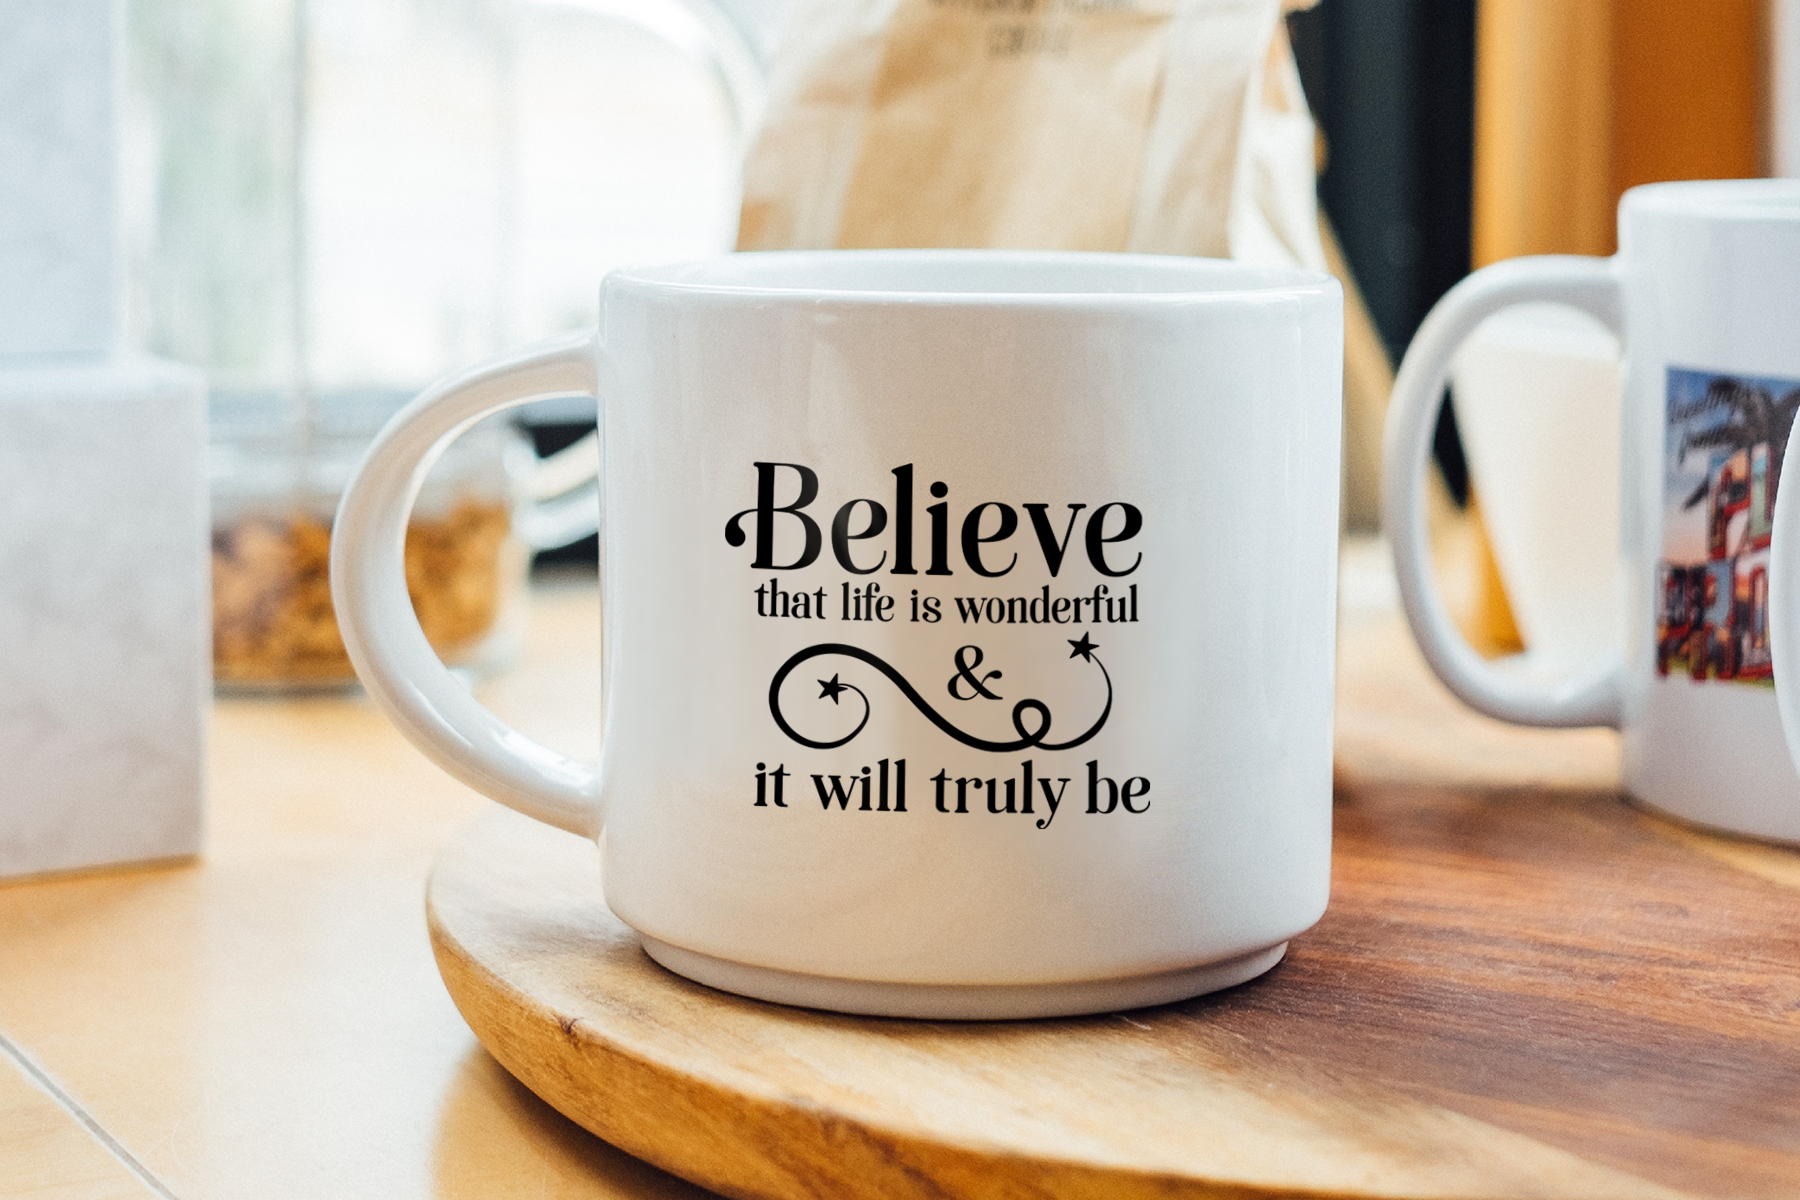 Believe that Life is Wonderful, An Inspirational Life SVG example image 2